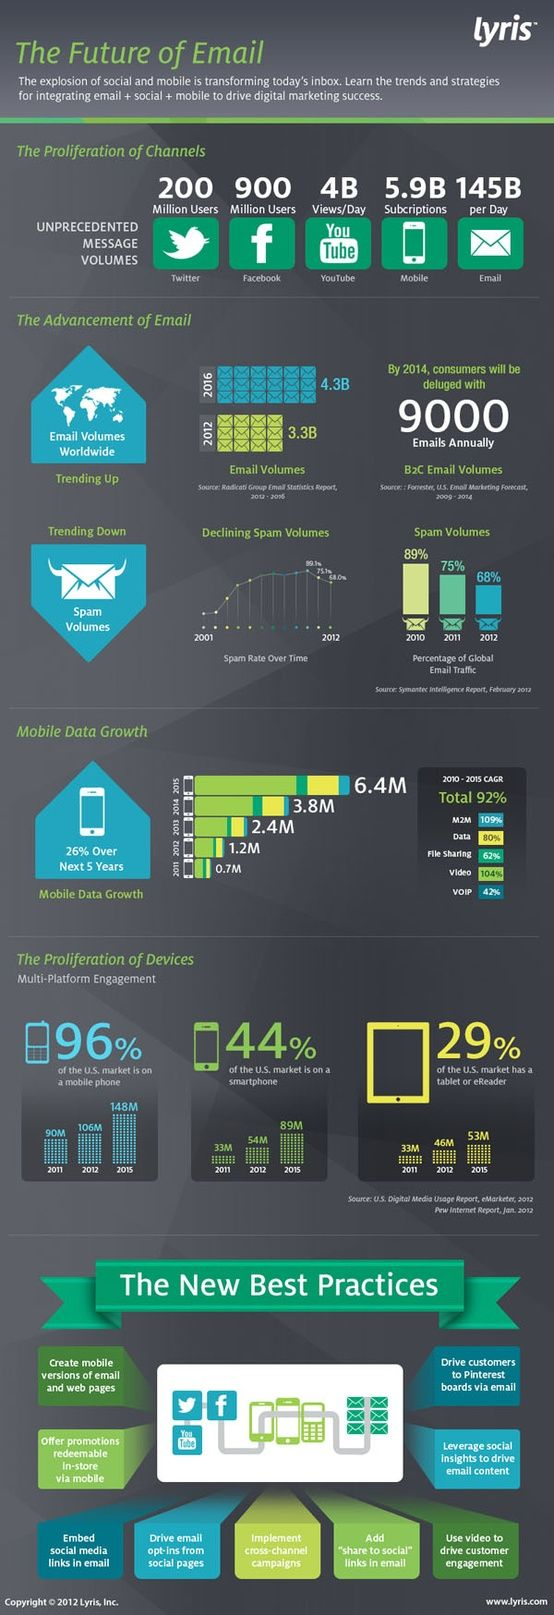 Email Facts - The Future